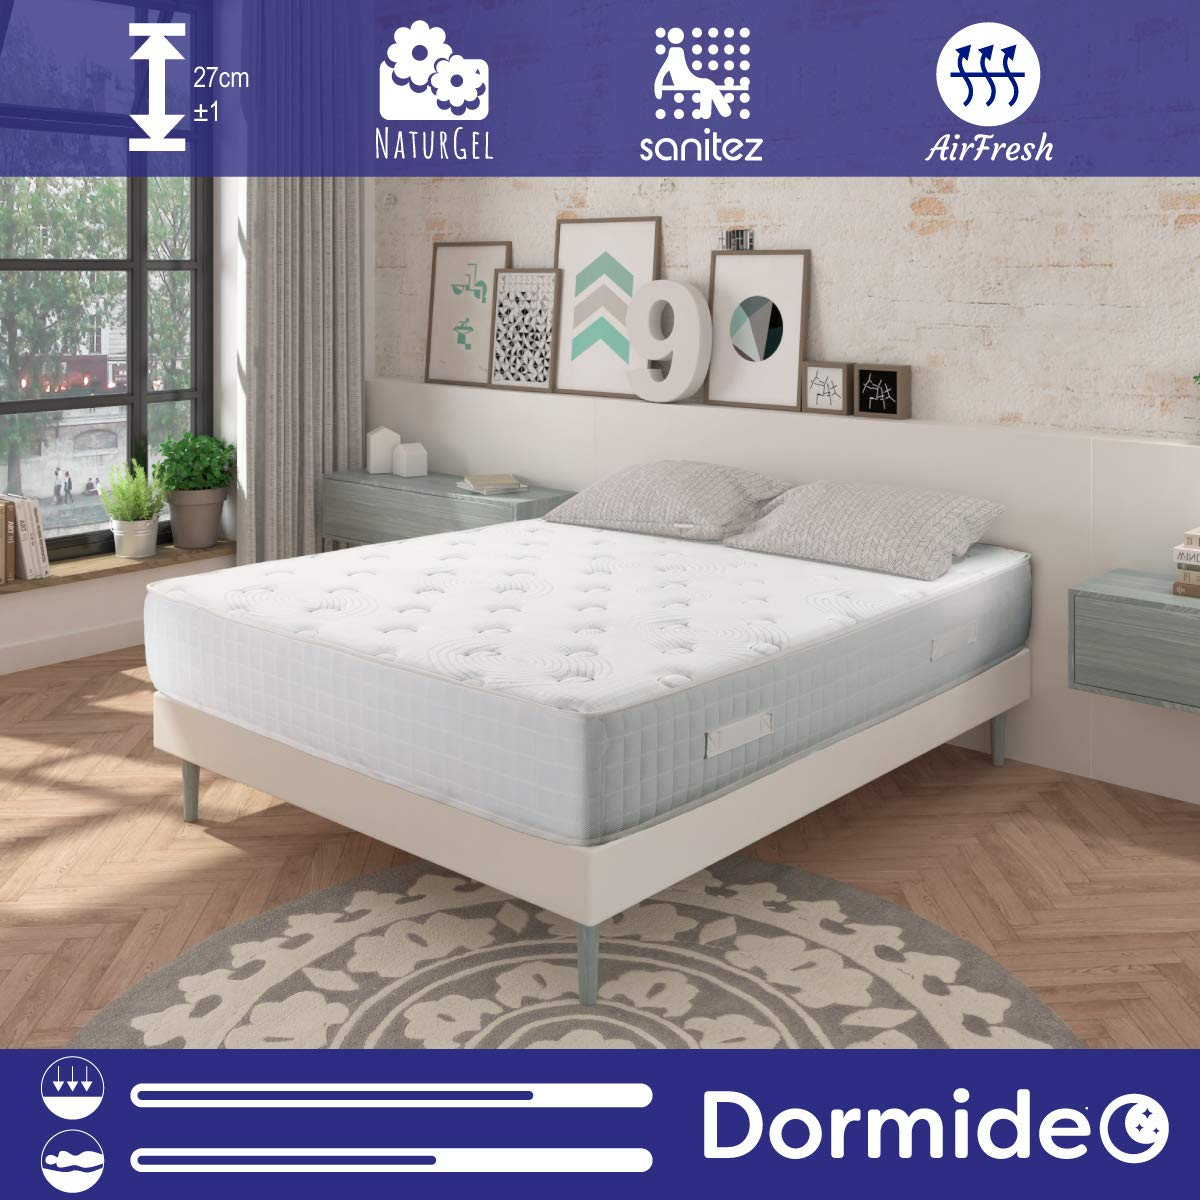 DORMIDEO - Colchón Viscoelástico City Luxury - Fibras ecológicas Cashmere, Antibacterias, 90x190cm: Amazon.es: Hogar